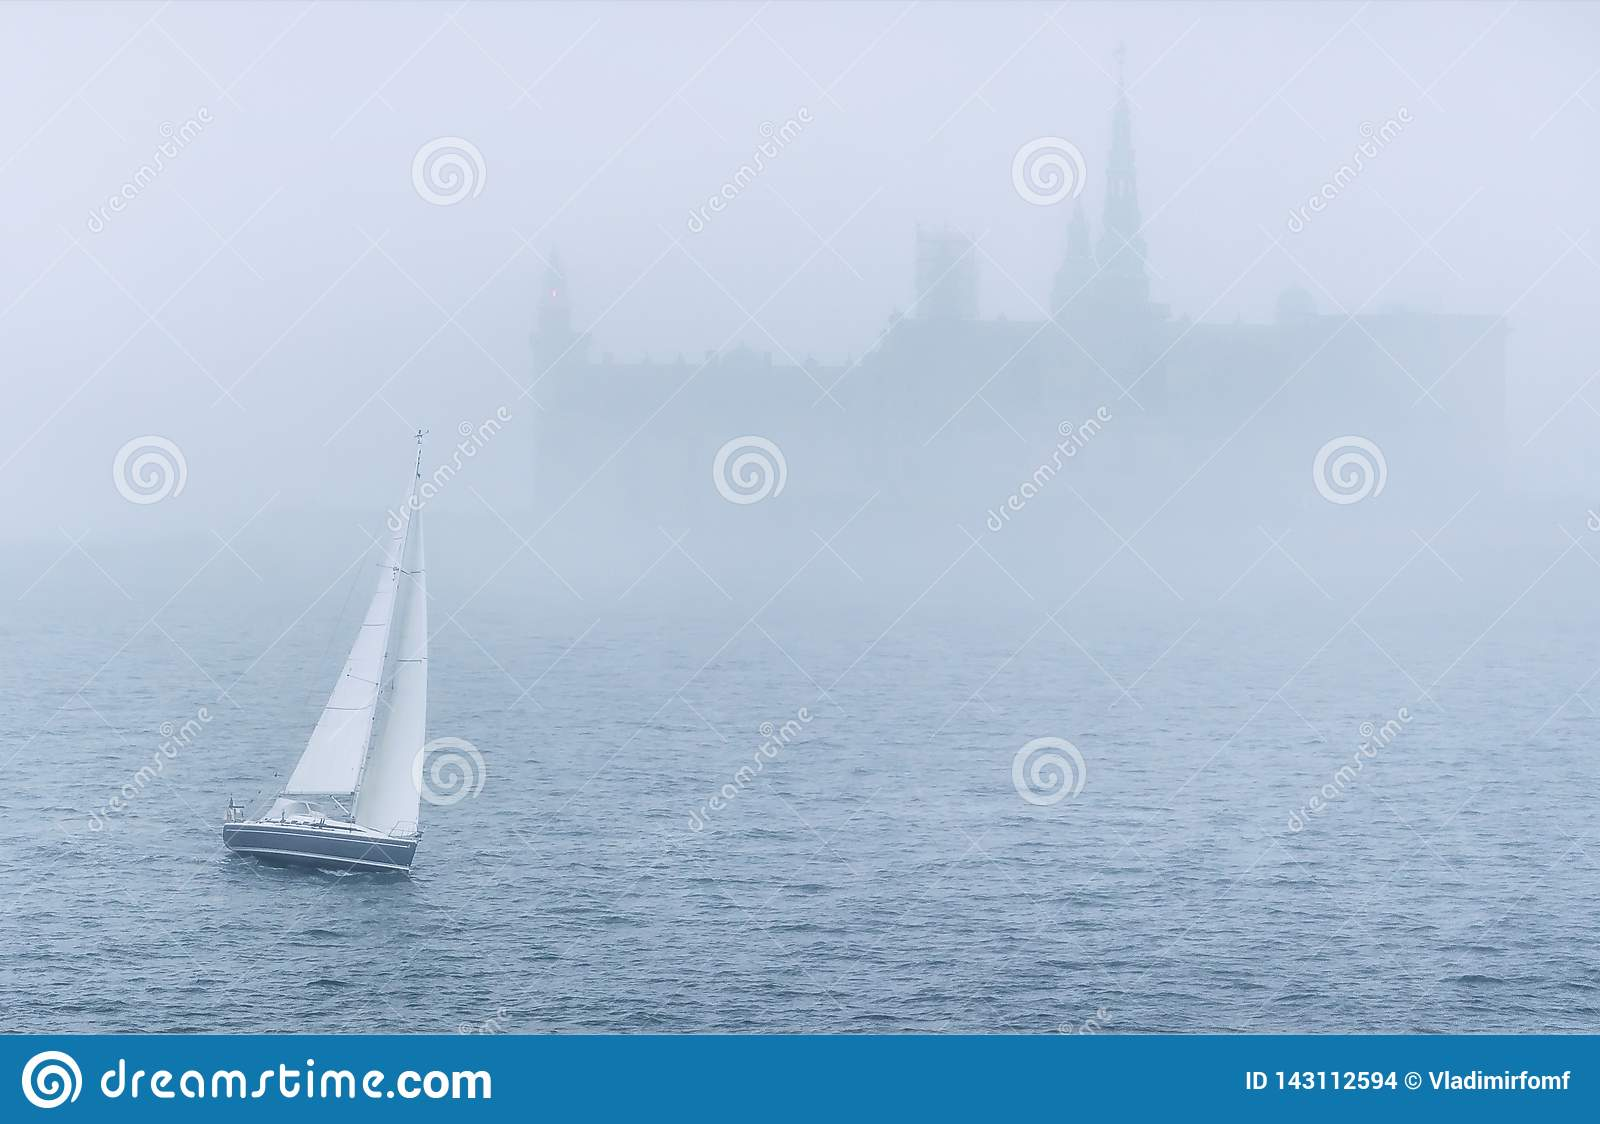 Boat in the sea in mist